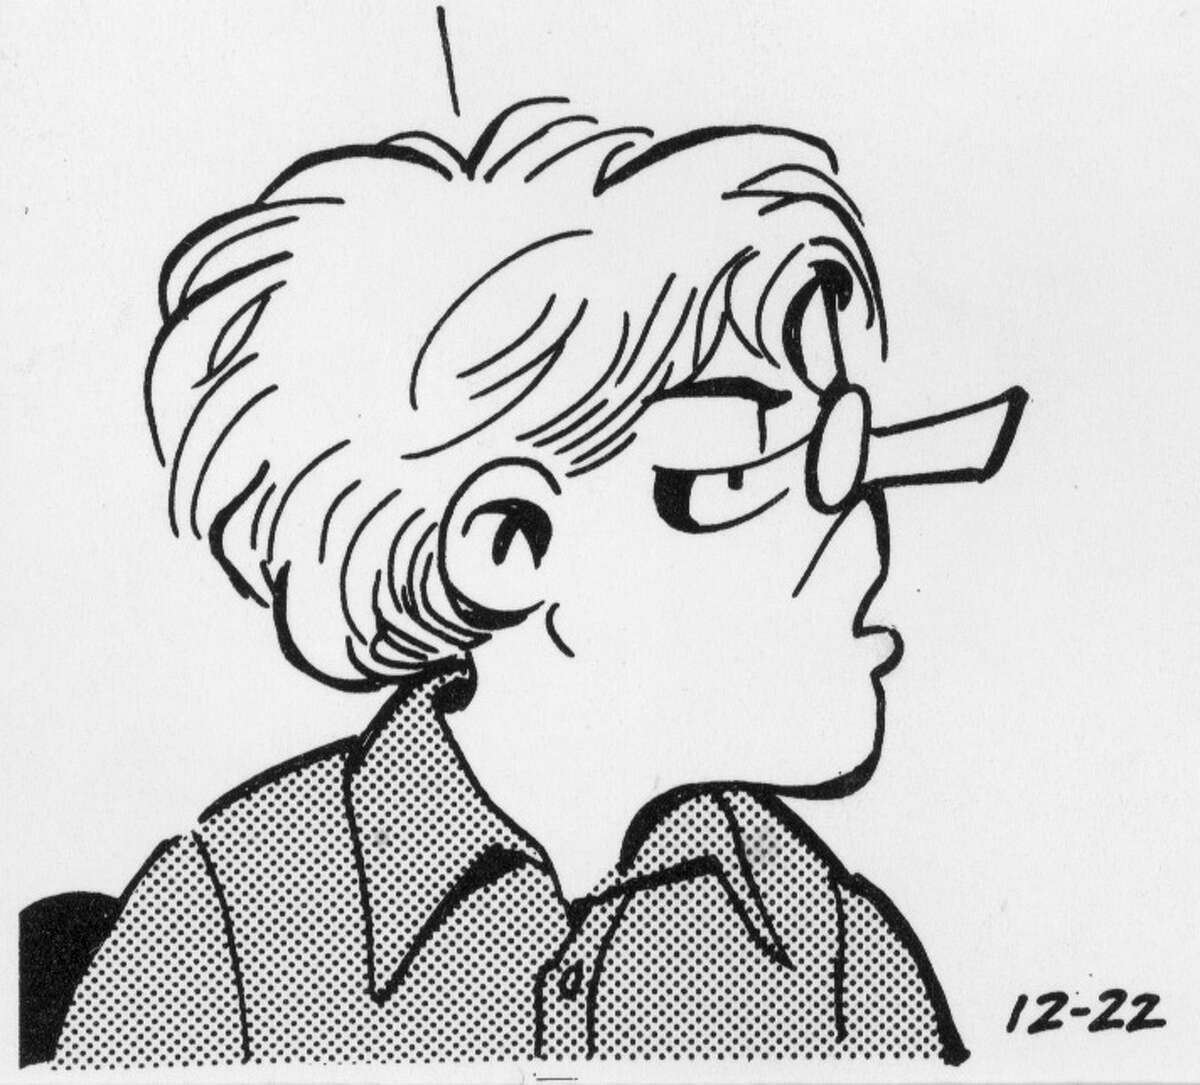 one of the characters from the Doonesbury comic strip by G. B. Trudeau HOUCHRON CAPTION (01/03/2000):